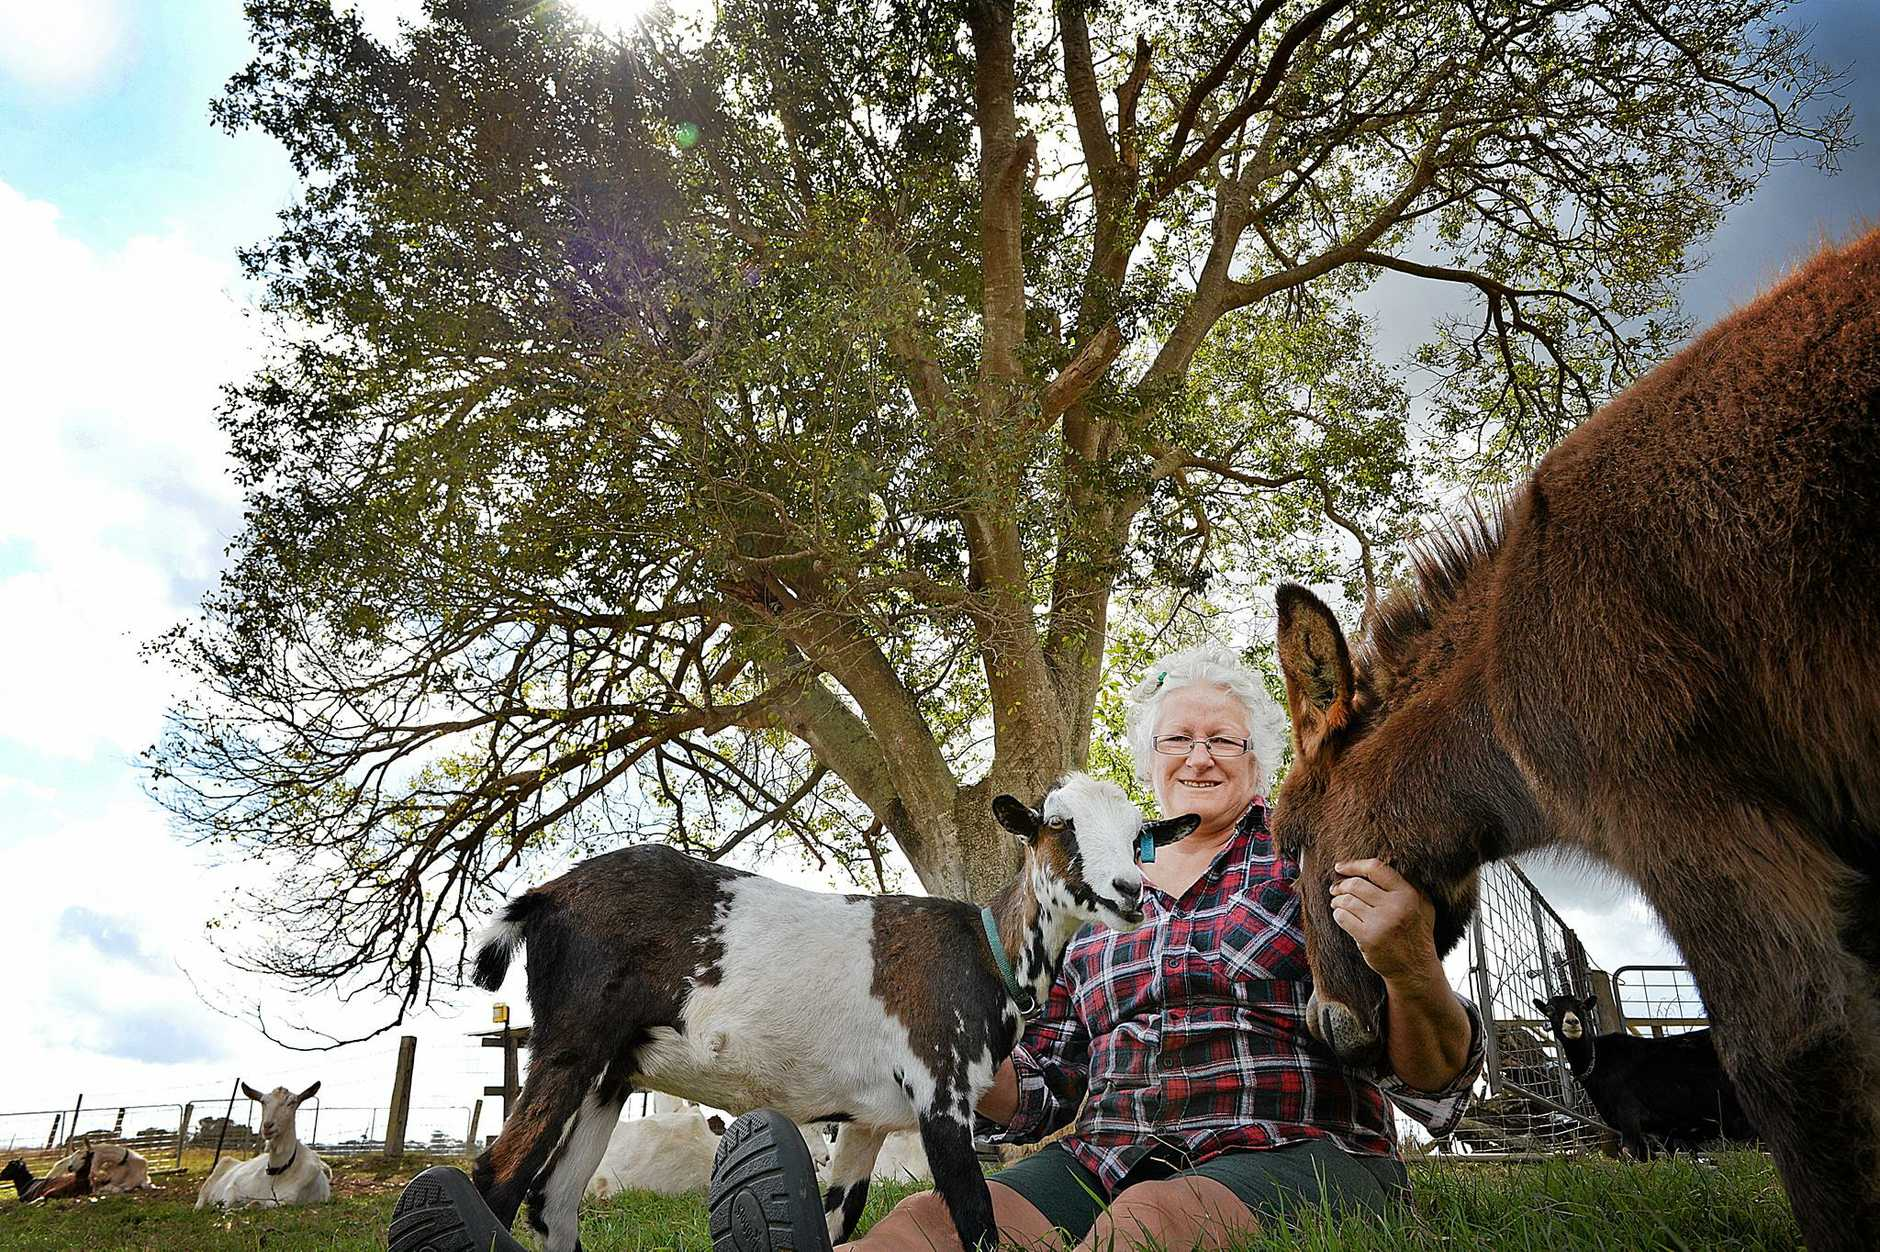 Debbie Nicolaides with the Australian miniature goats she breeds, particularly Wild River Barney (also known as Me-me, after a noise she made as a baby).